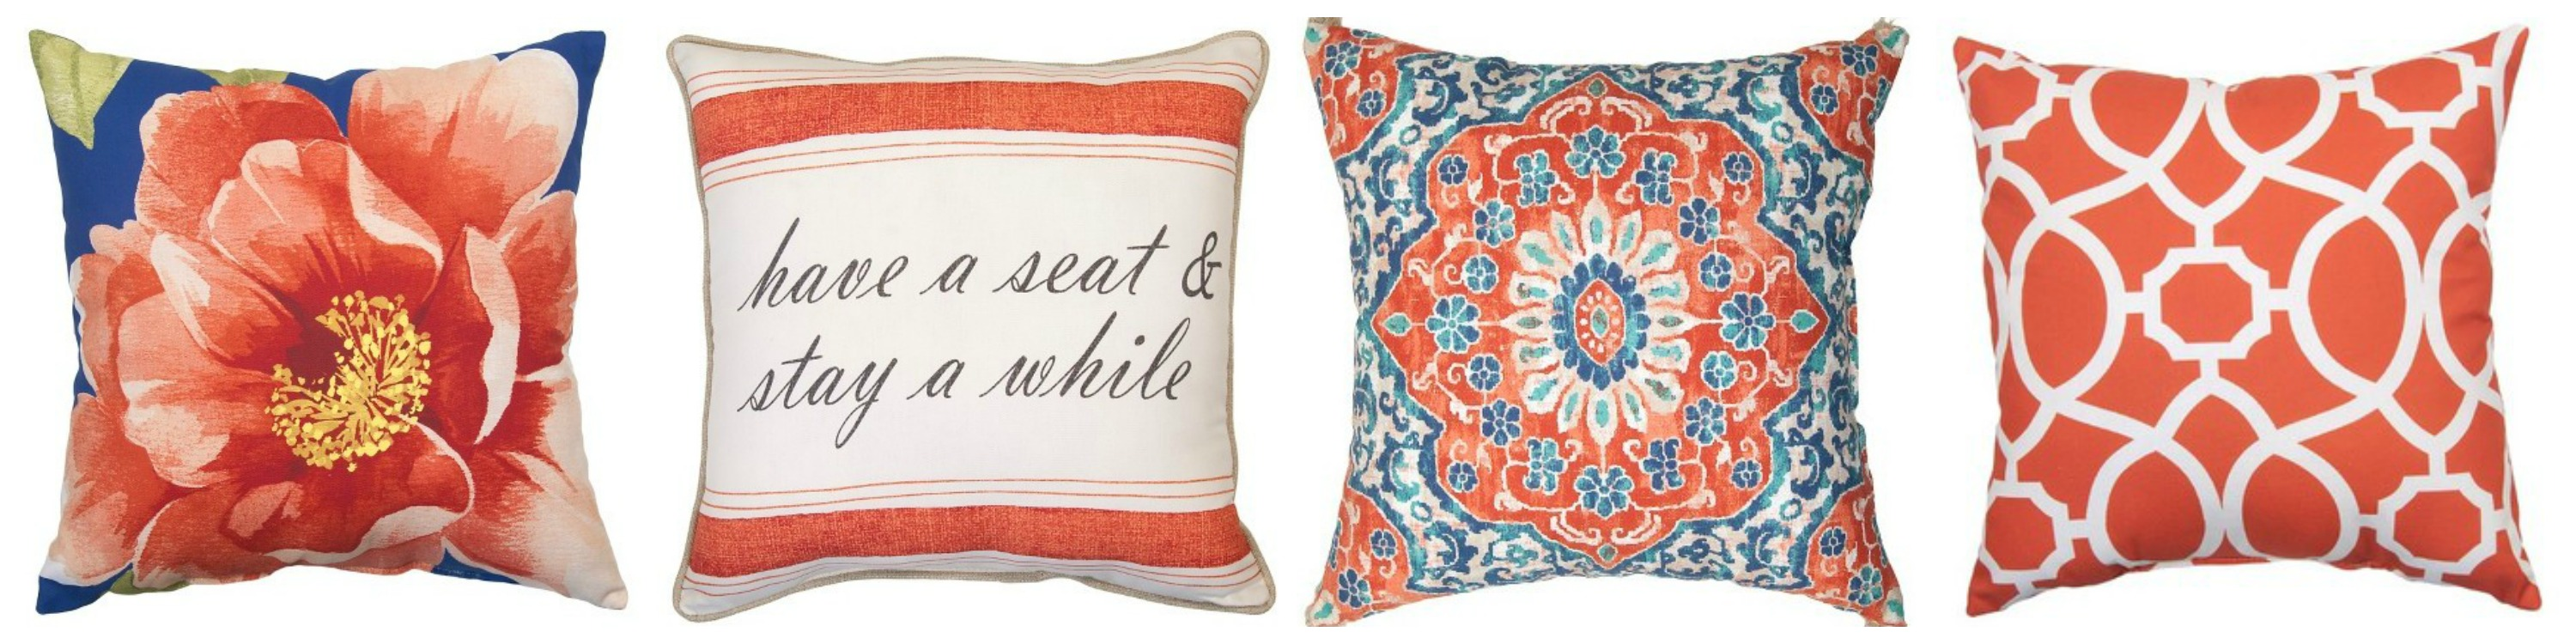 target outdoor pillows